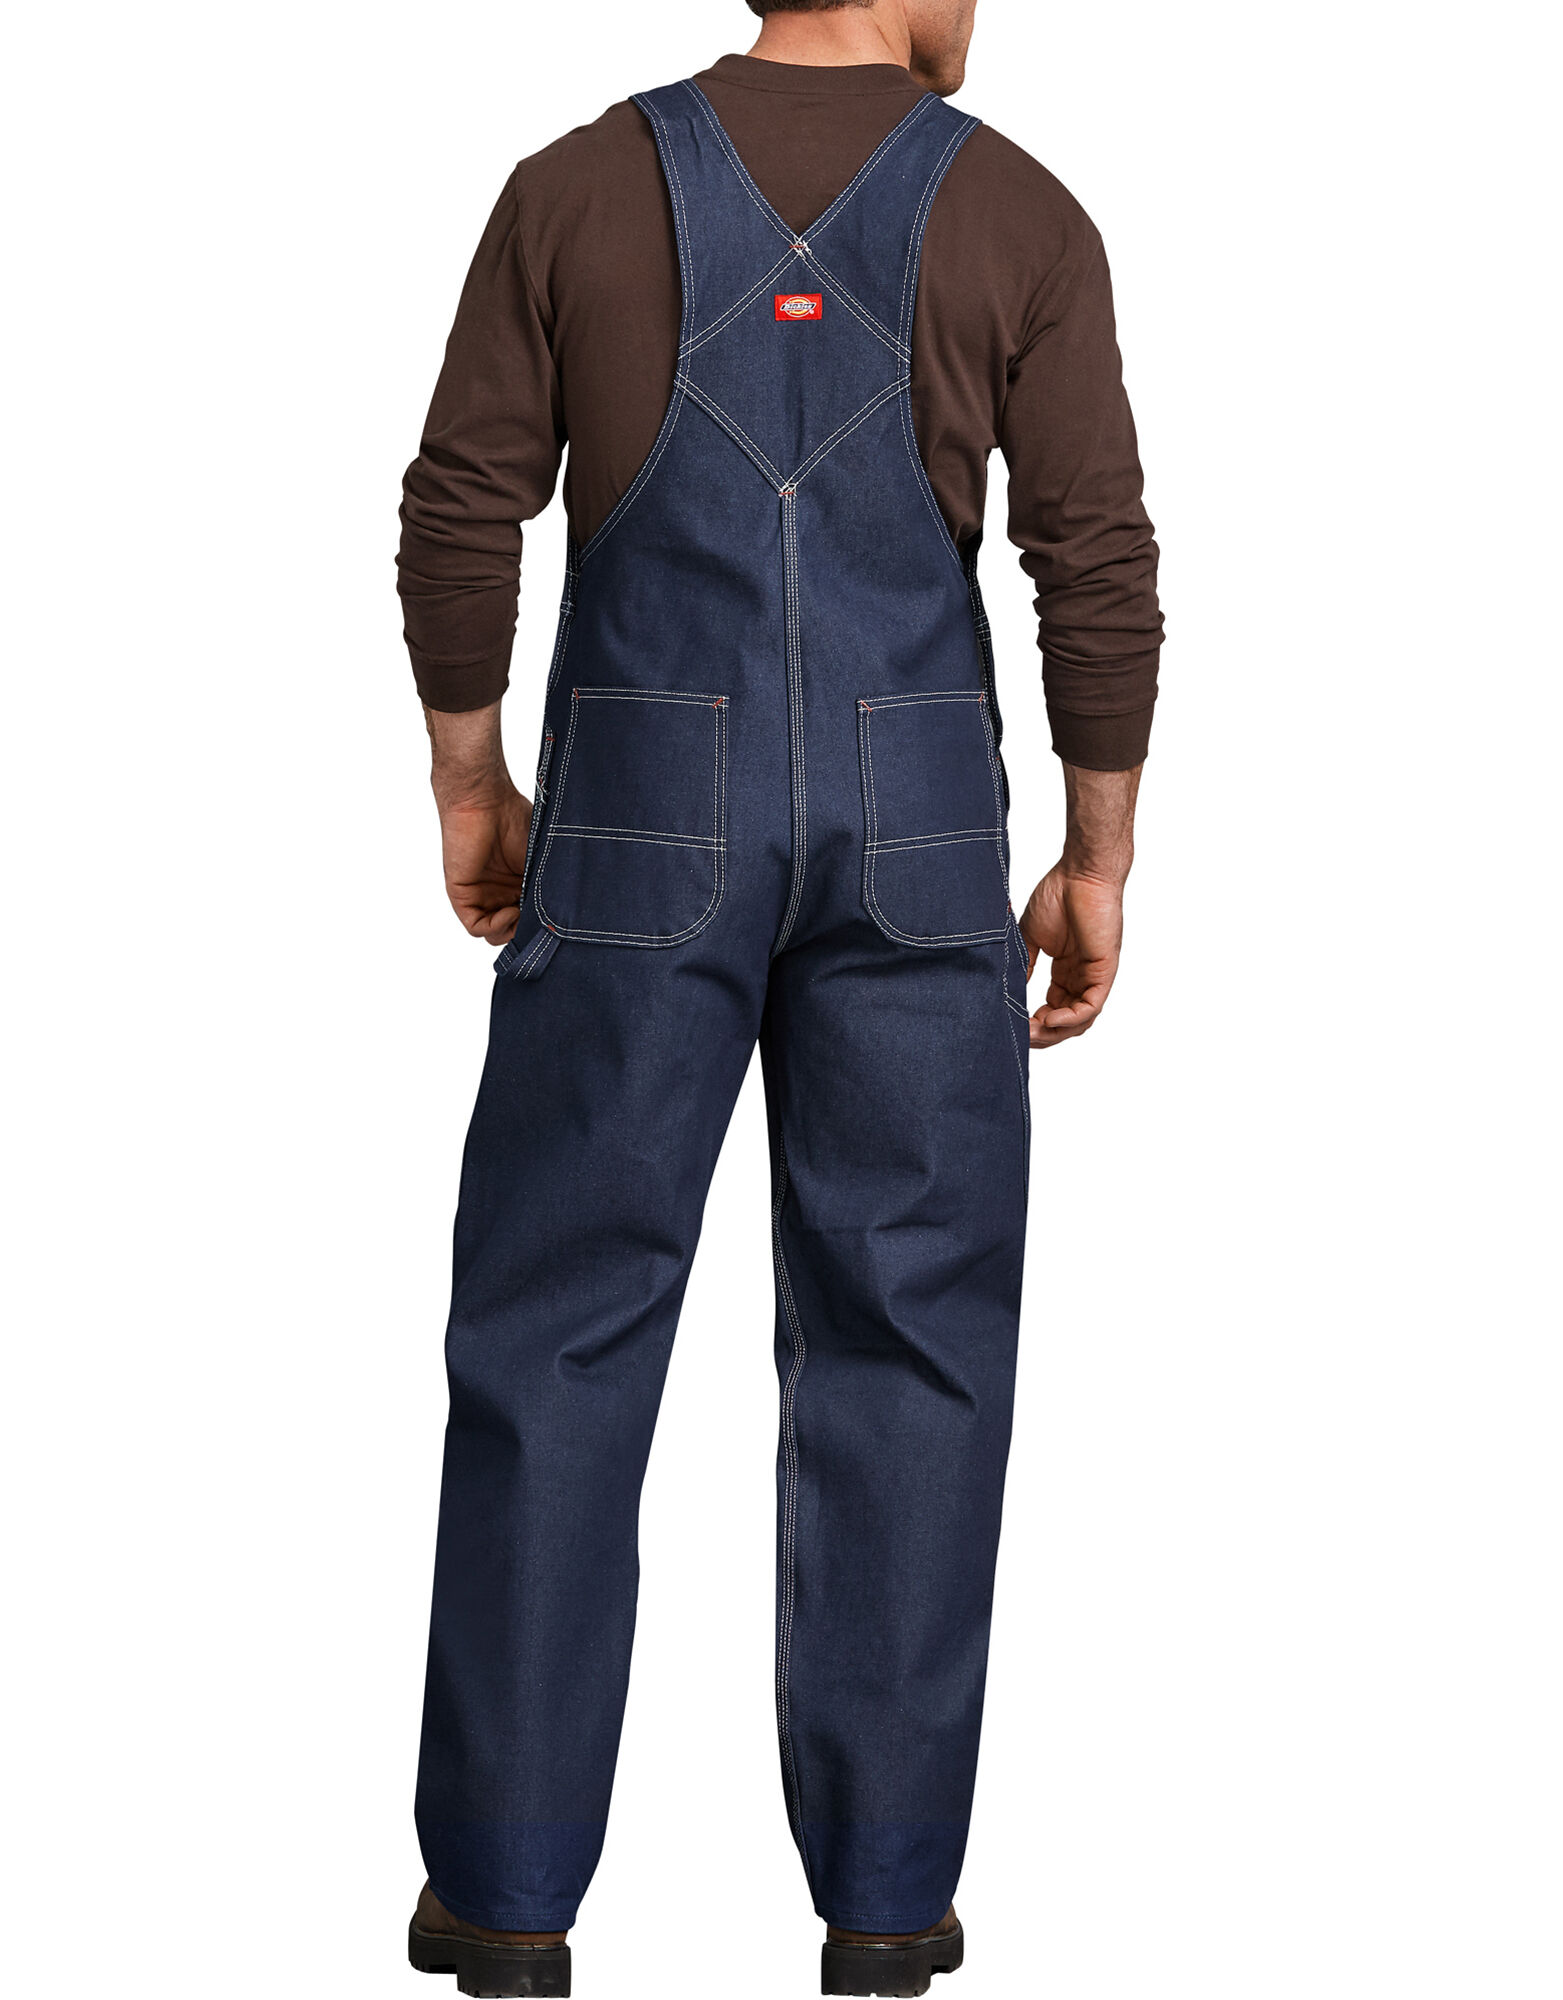 indigo bib overalls for men dickies. Black Bedroom Furniture Sets. Home Design Ideas